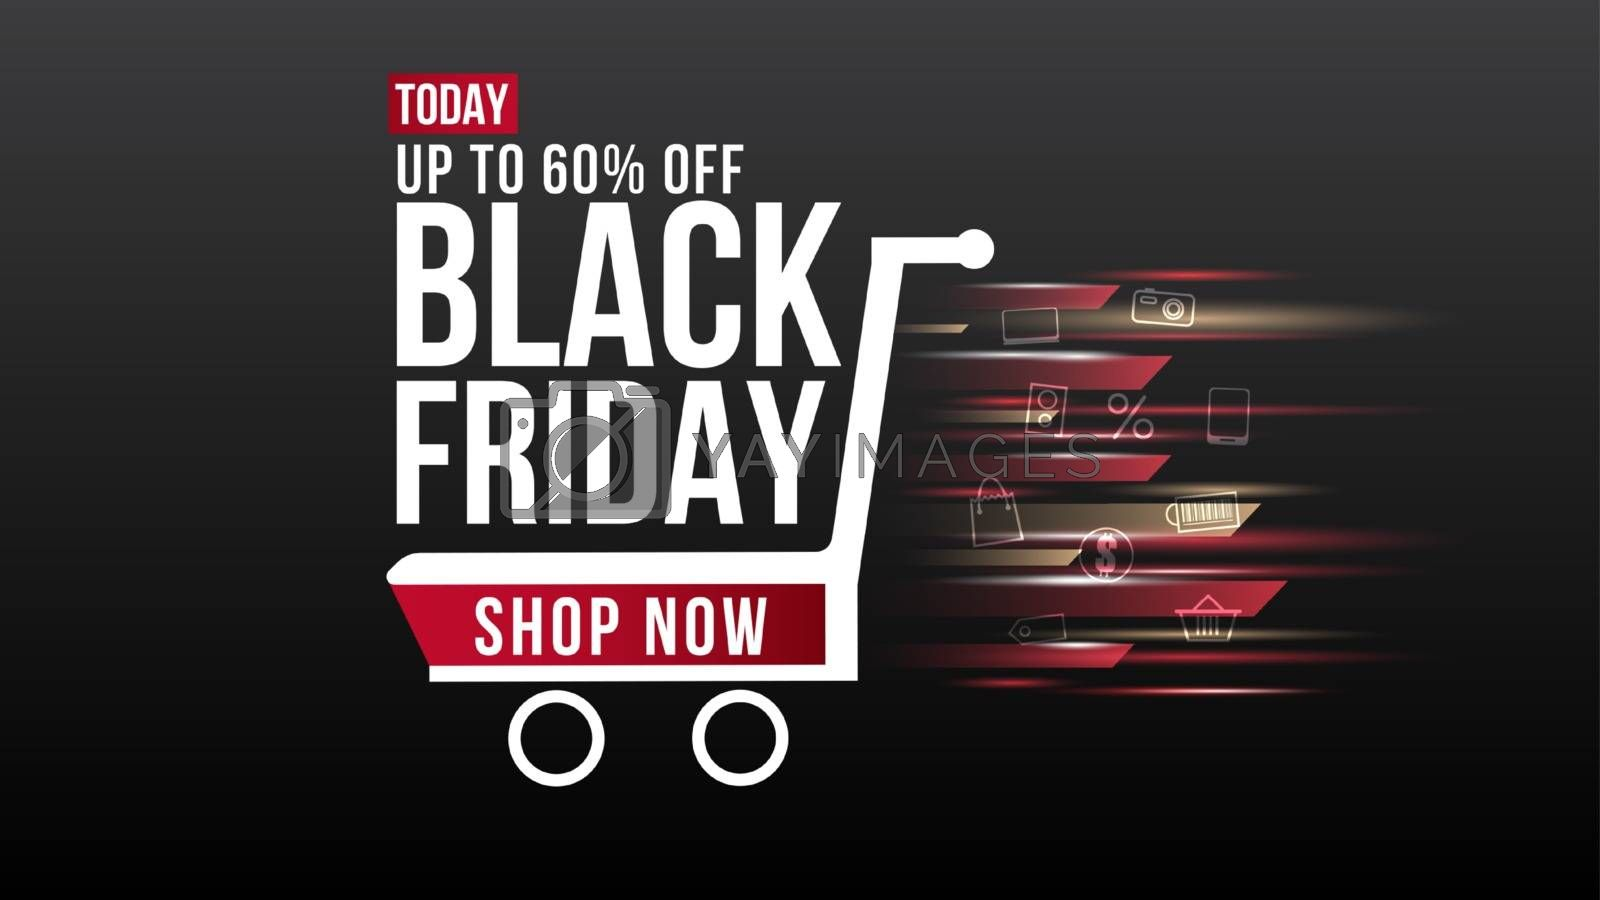 Black Friday sale banner background design template.Poster and Flyer social media for website and mobile website development, email and newsletter design, marketing material.Vector illustration